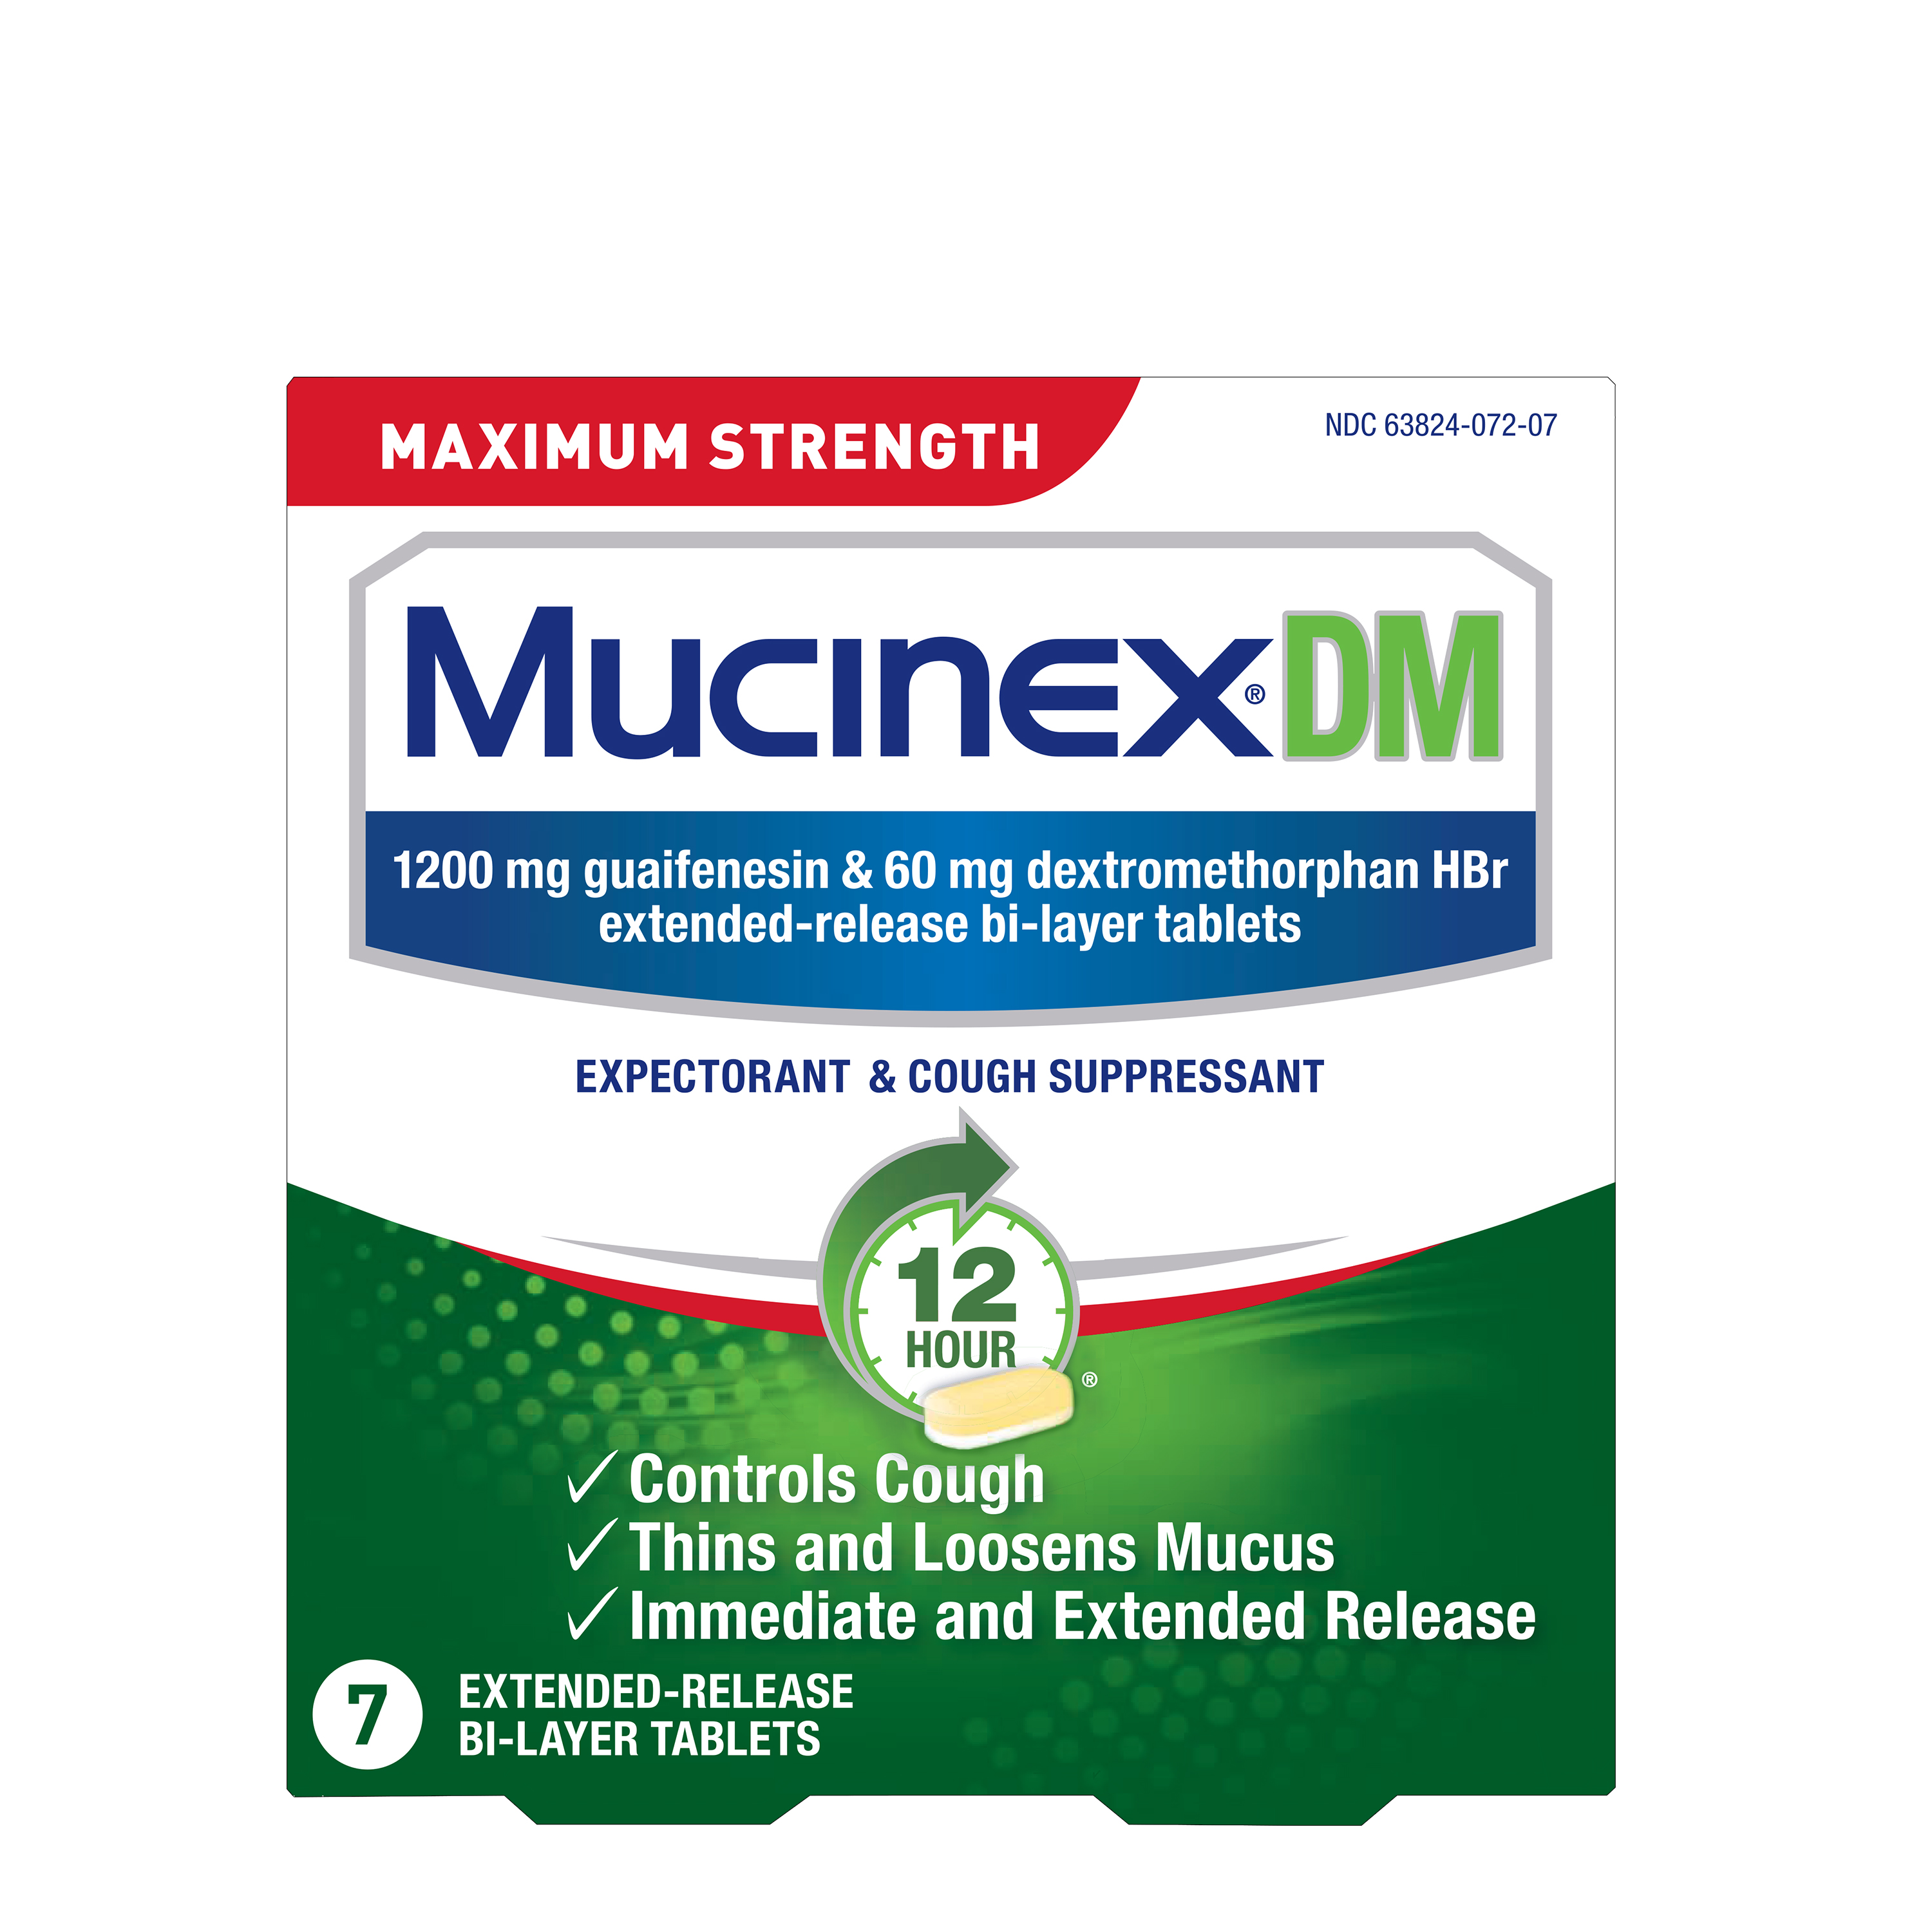 MUCINEX® 12 Hour DM - 1200 mg Guaifenesin, 60 mg Dextromethorphan HBr